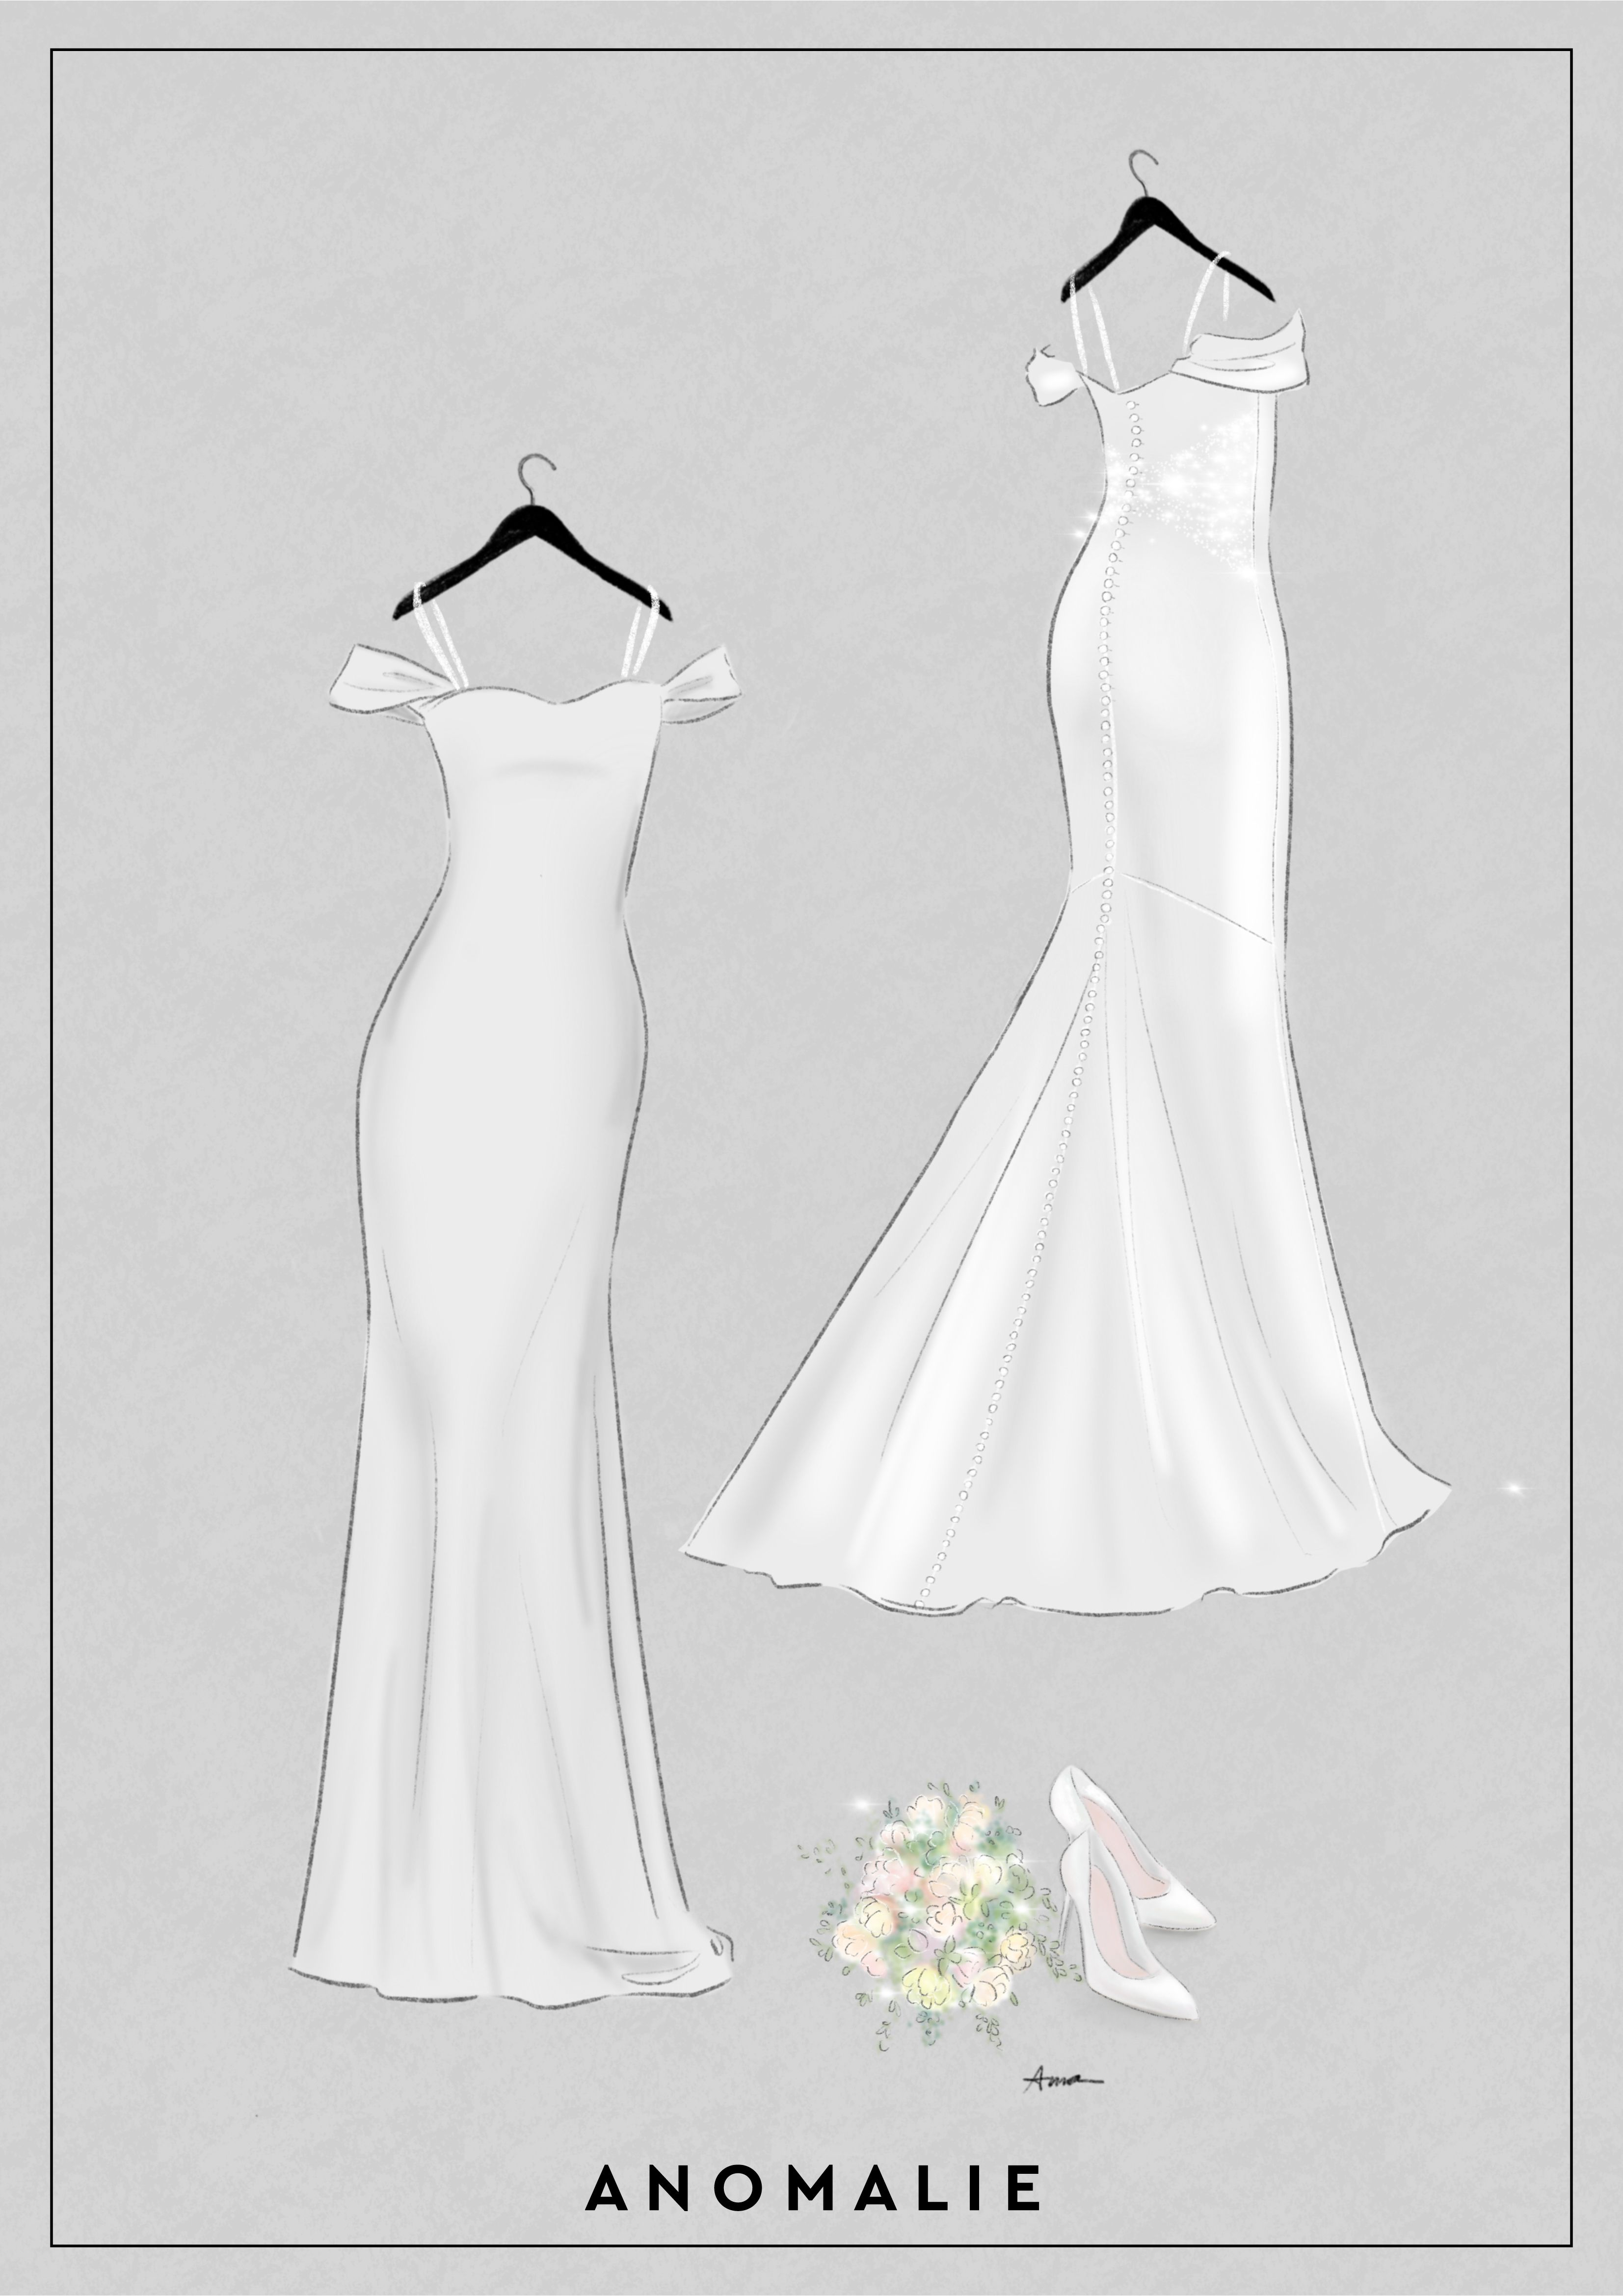 Spaghetti Straps Help Hold Up A Wedding Gown With Off The Shoulder Sleeves Anomalie Doll Wedding Dress Wedding Dress Sketches Fashion Sketches Dresses